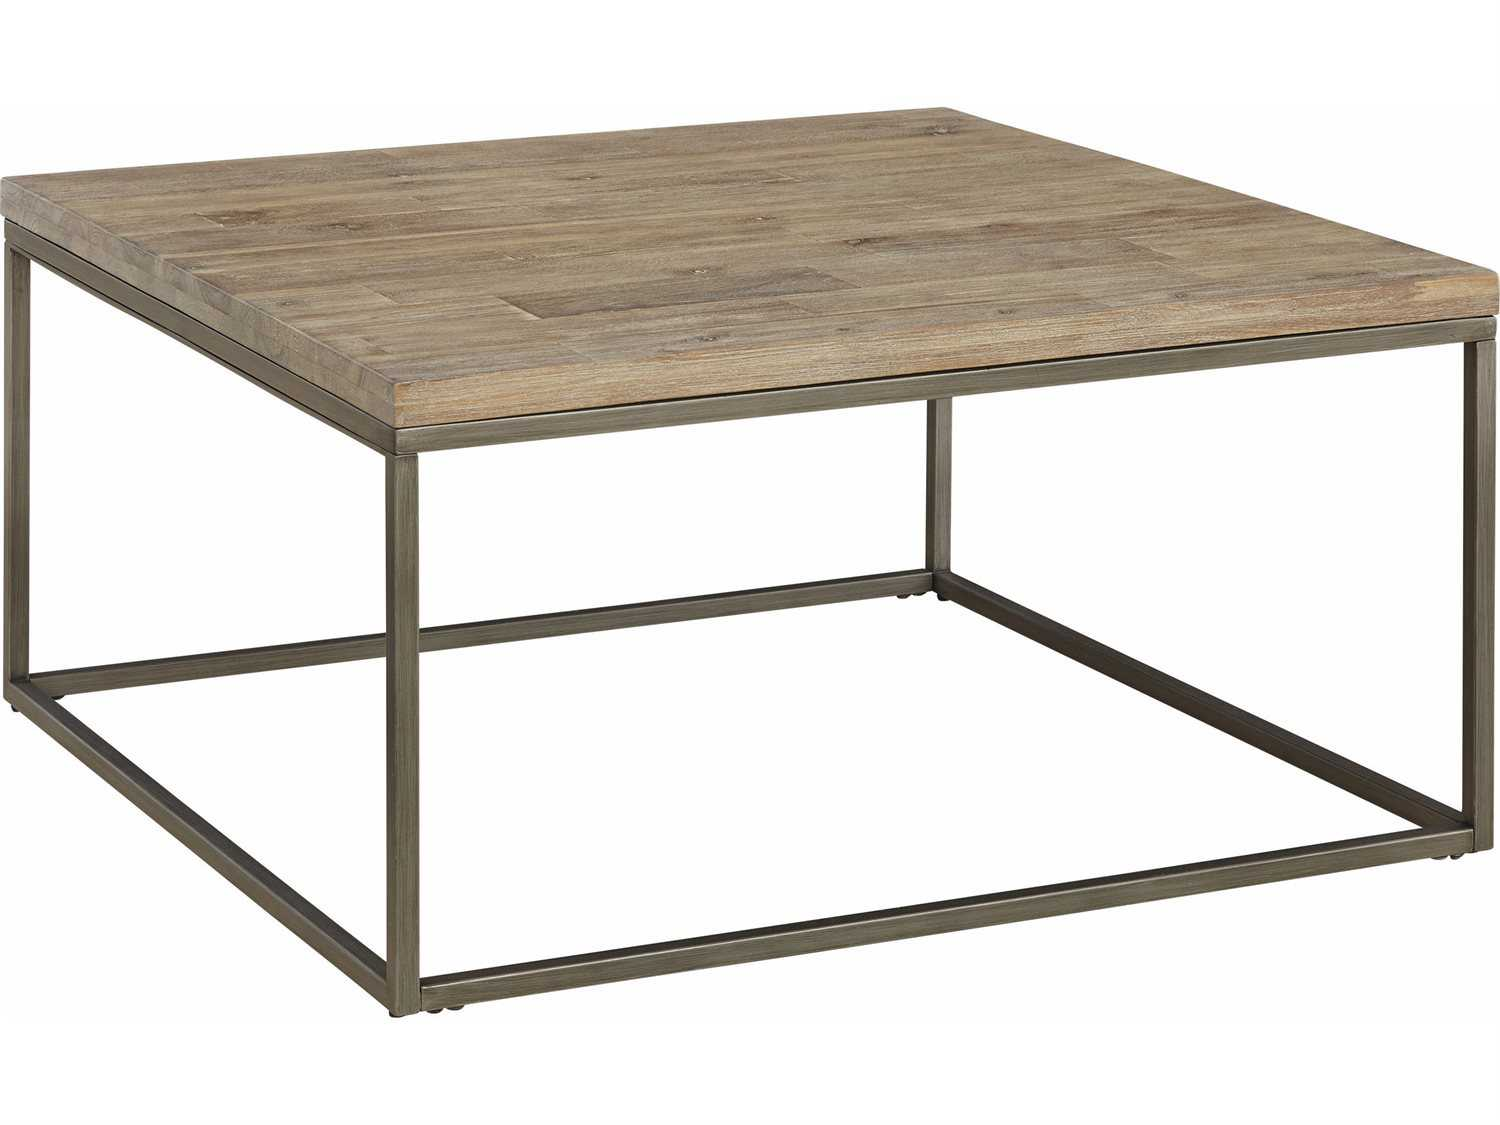 Casana Alana Weathered Acacia 36 Square Coffee Table